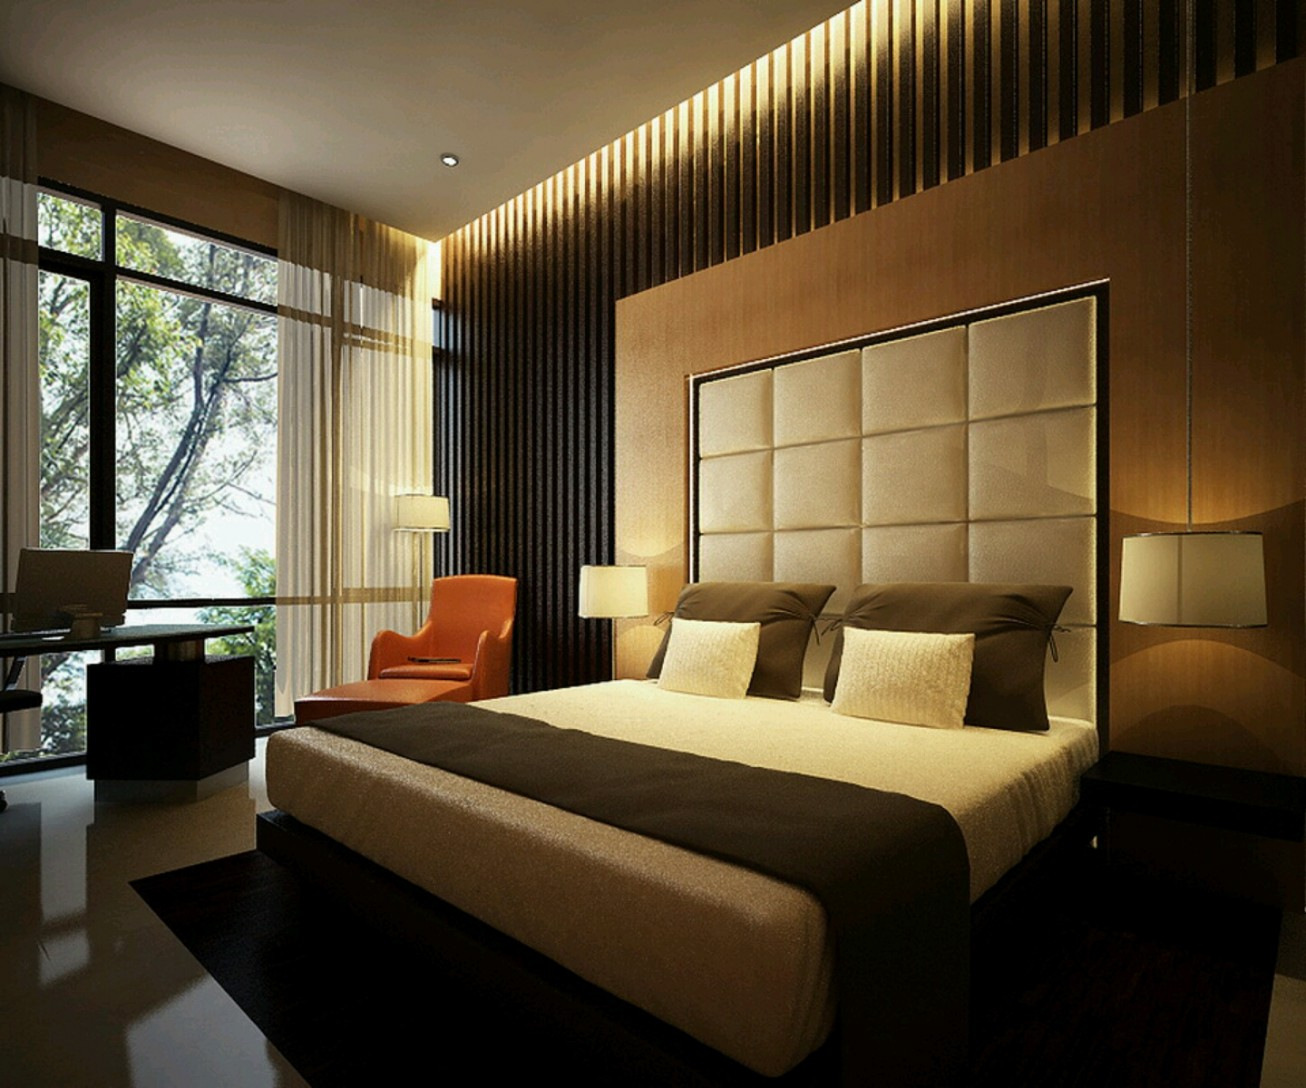 25 Best Bedroom Designs Ideas - The WoW Style on Good Bedroom Ideas For Small Rooms  id=34225